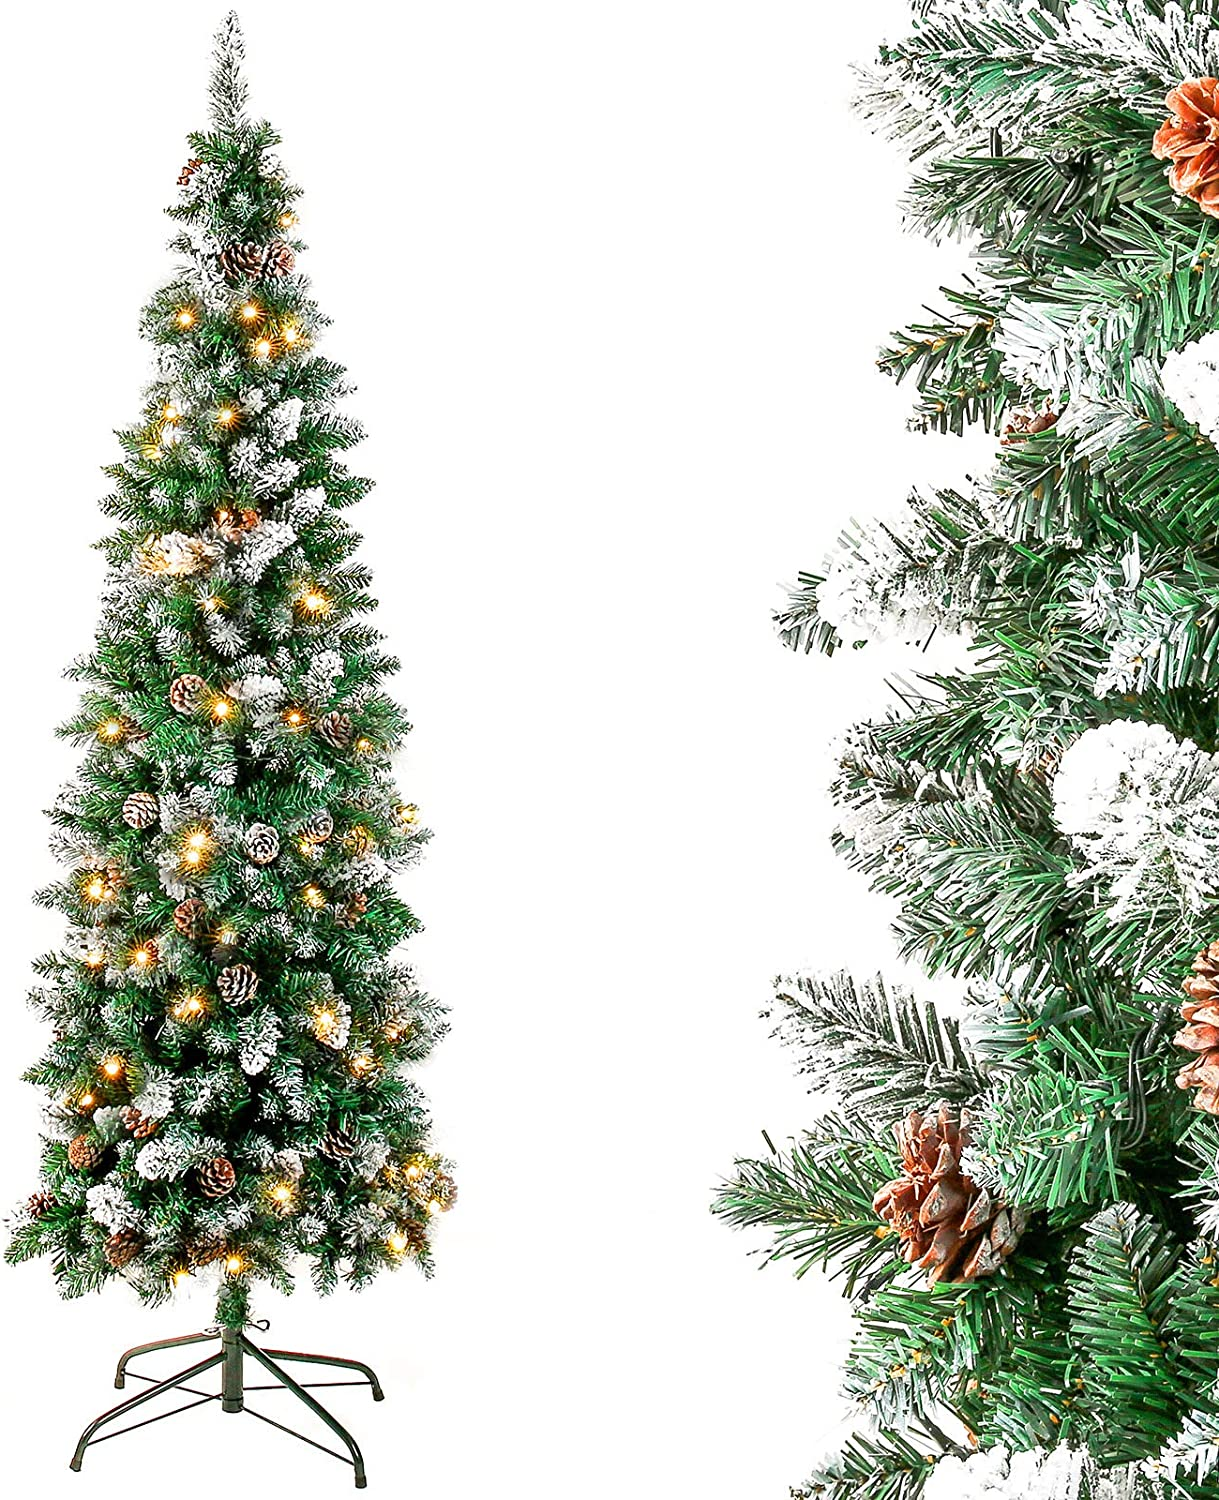 Homde Pencil Christmas Tree 6 Foot Pre-Lit Artificial Christmas Tree with Flocked Snow Pine Cone 170 Warm White Lights Holiday Decor